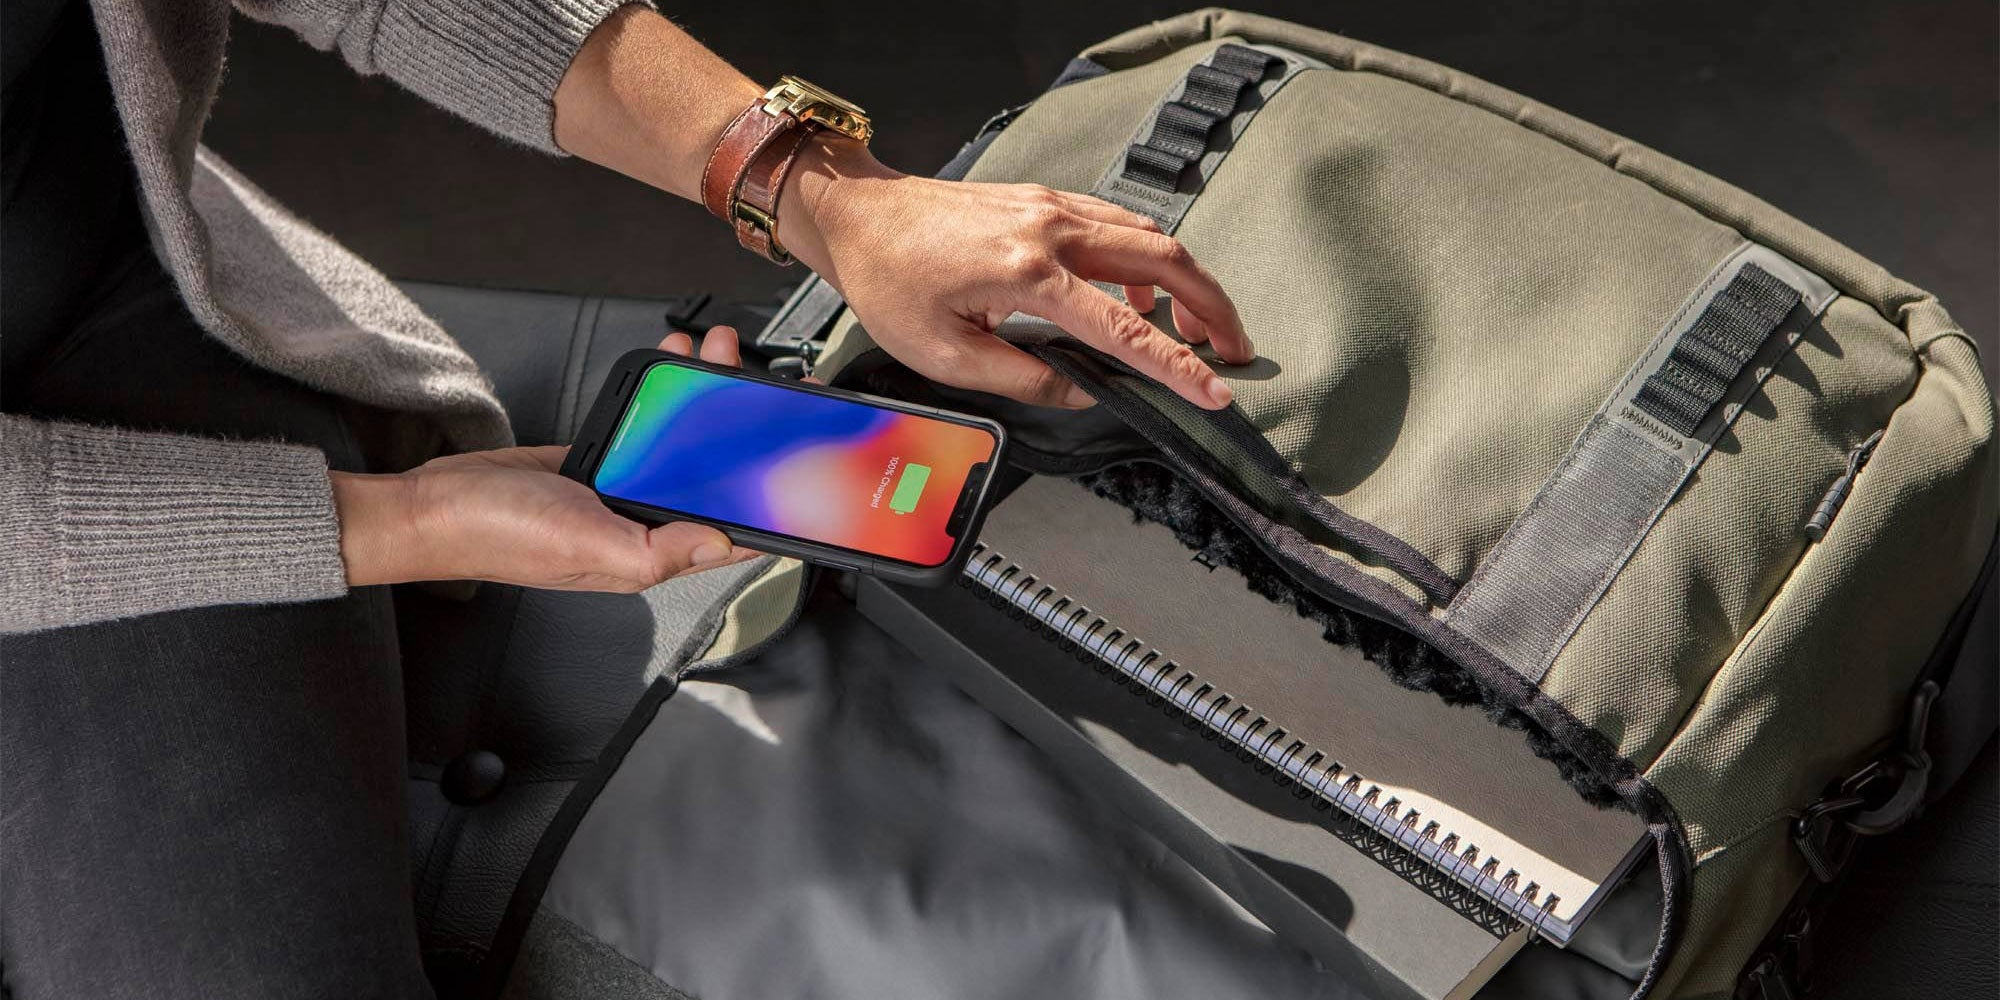 A woman putting an iPhone with a mophie juice pack air charging case on it into a laptop bag